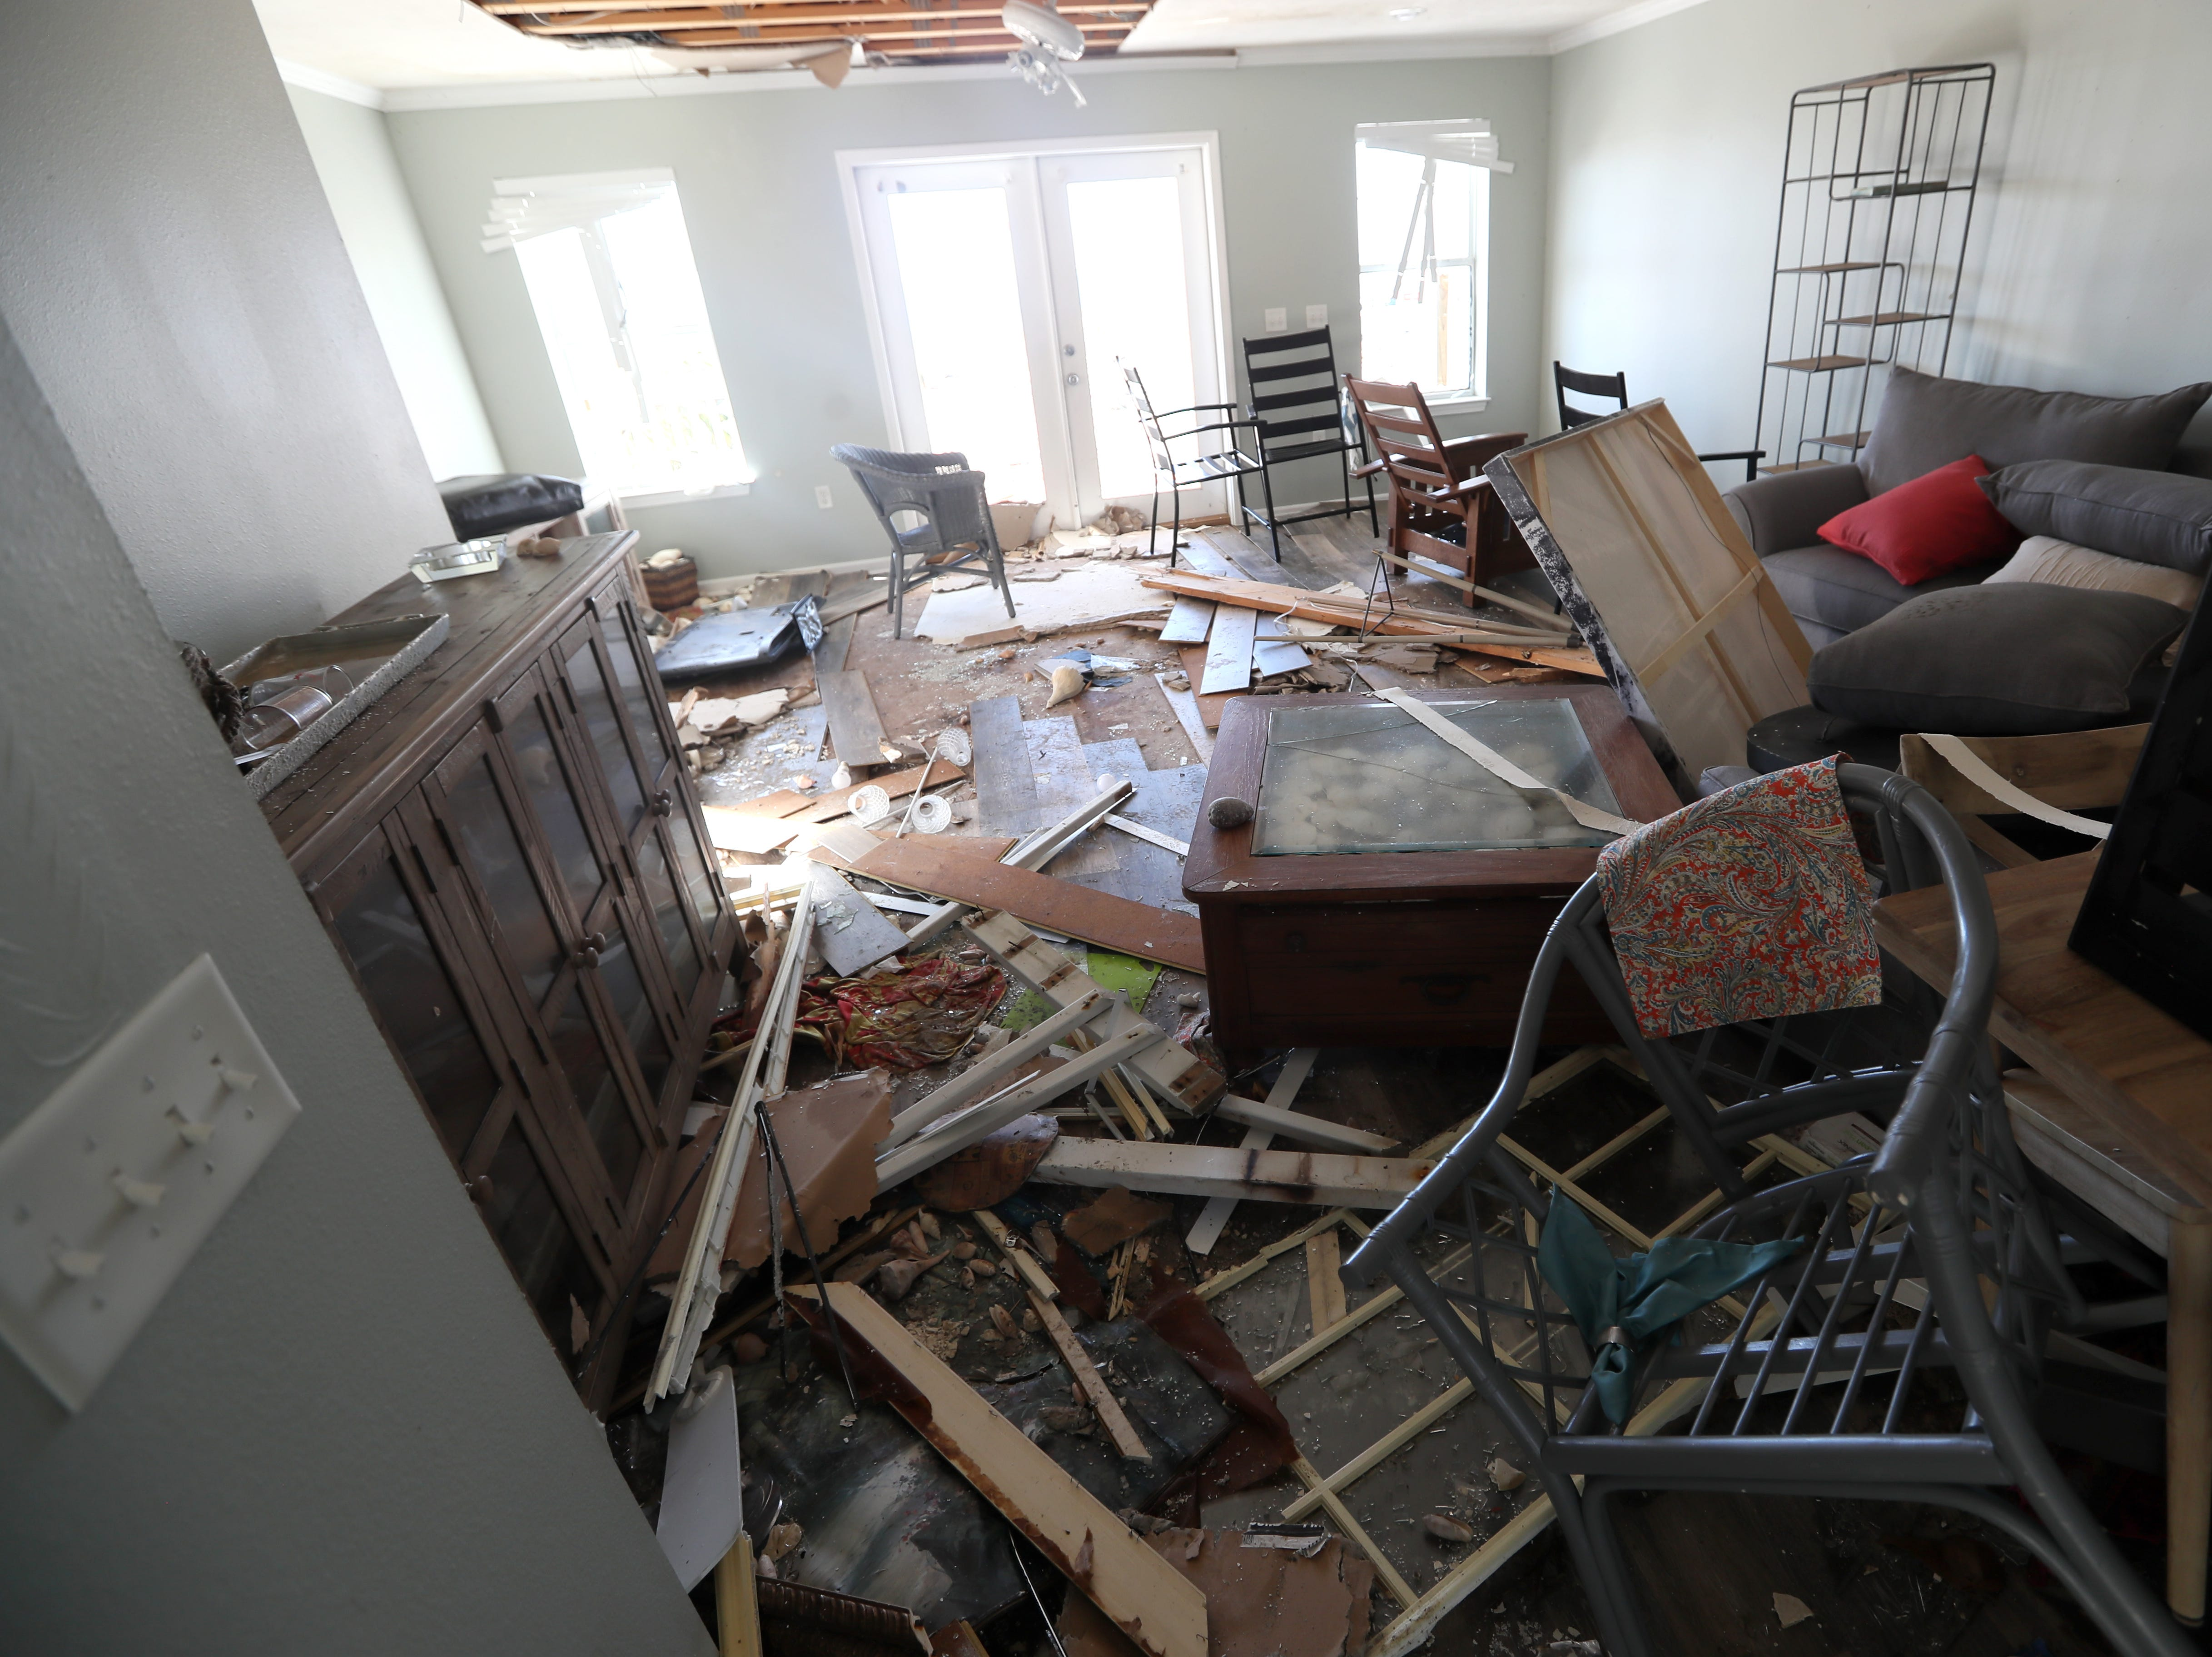 The Higdon family Mexico Beach condo is scattered with furniture and debris on Wednesday, Oct. 17, 2018, one week after Hurricane Michael ripped through the coastal Florida town.